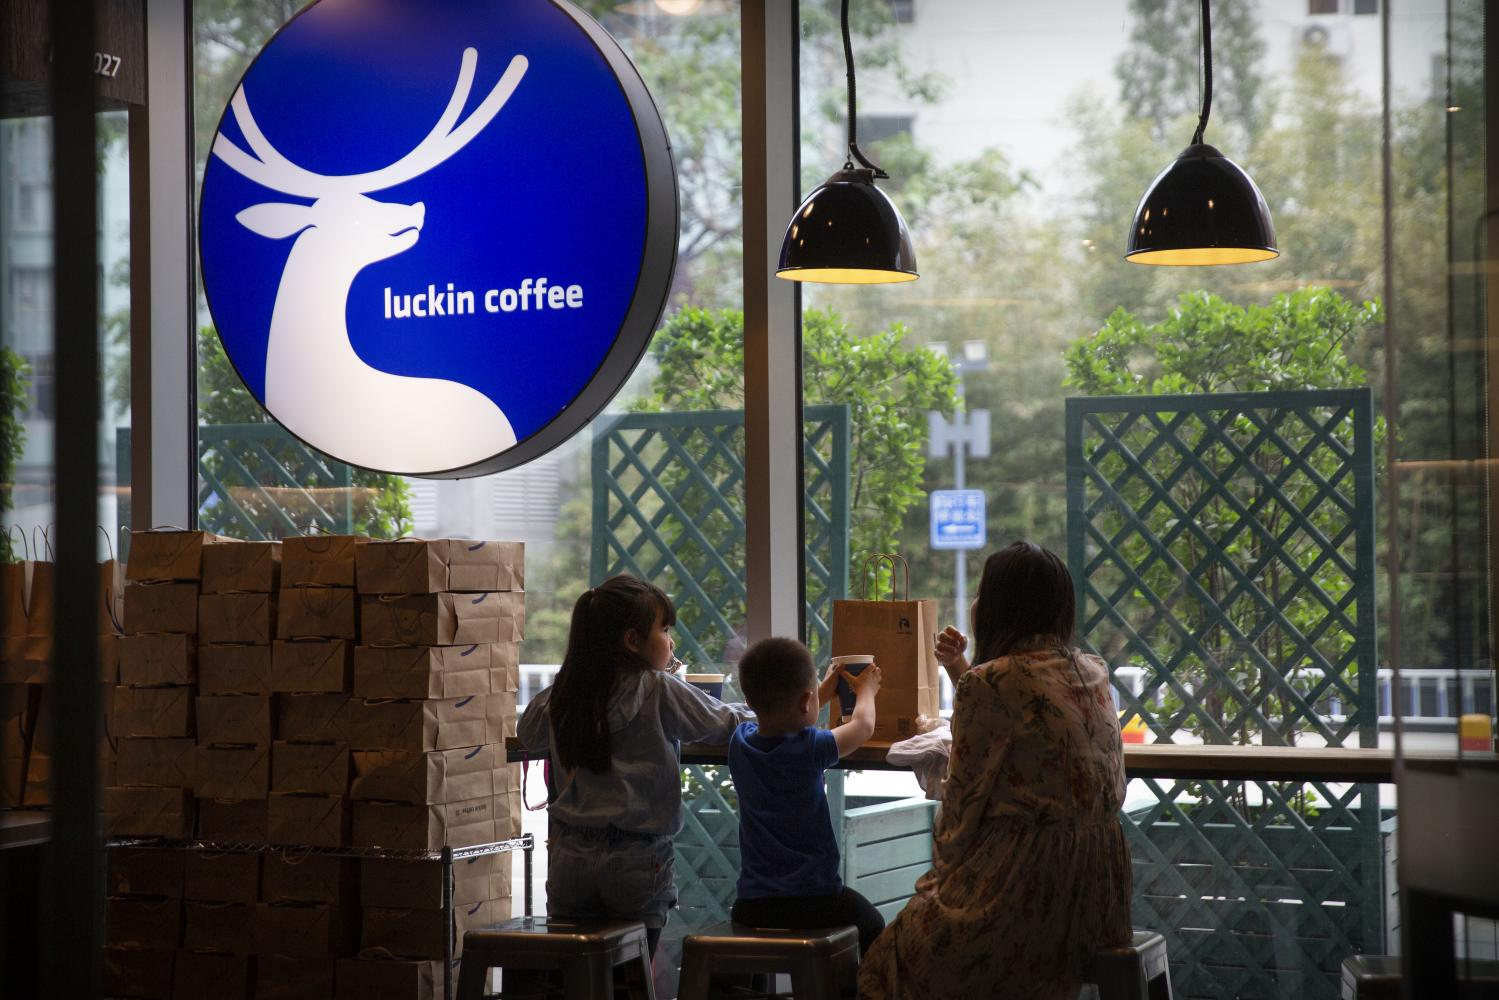 The number of Luckin Coffee Inc stores is 2,963, about 1,000 fewer than Starbucks. Luckin plans to open 4,500 stores by the end of the year. (AP photo)